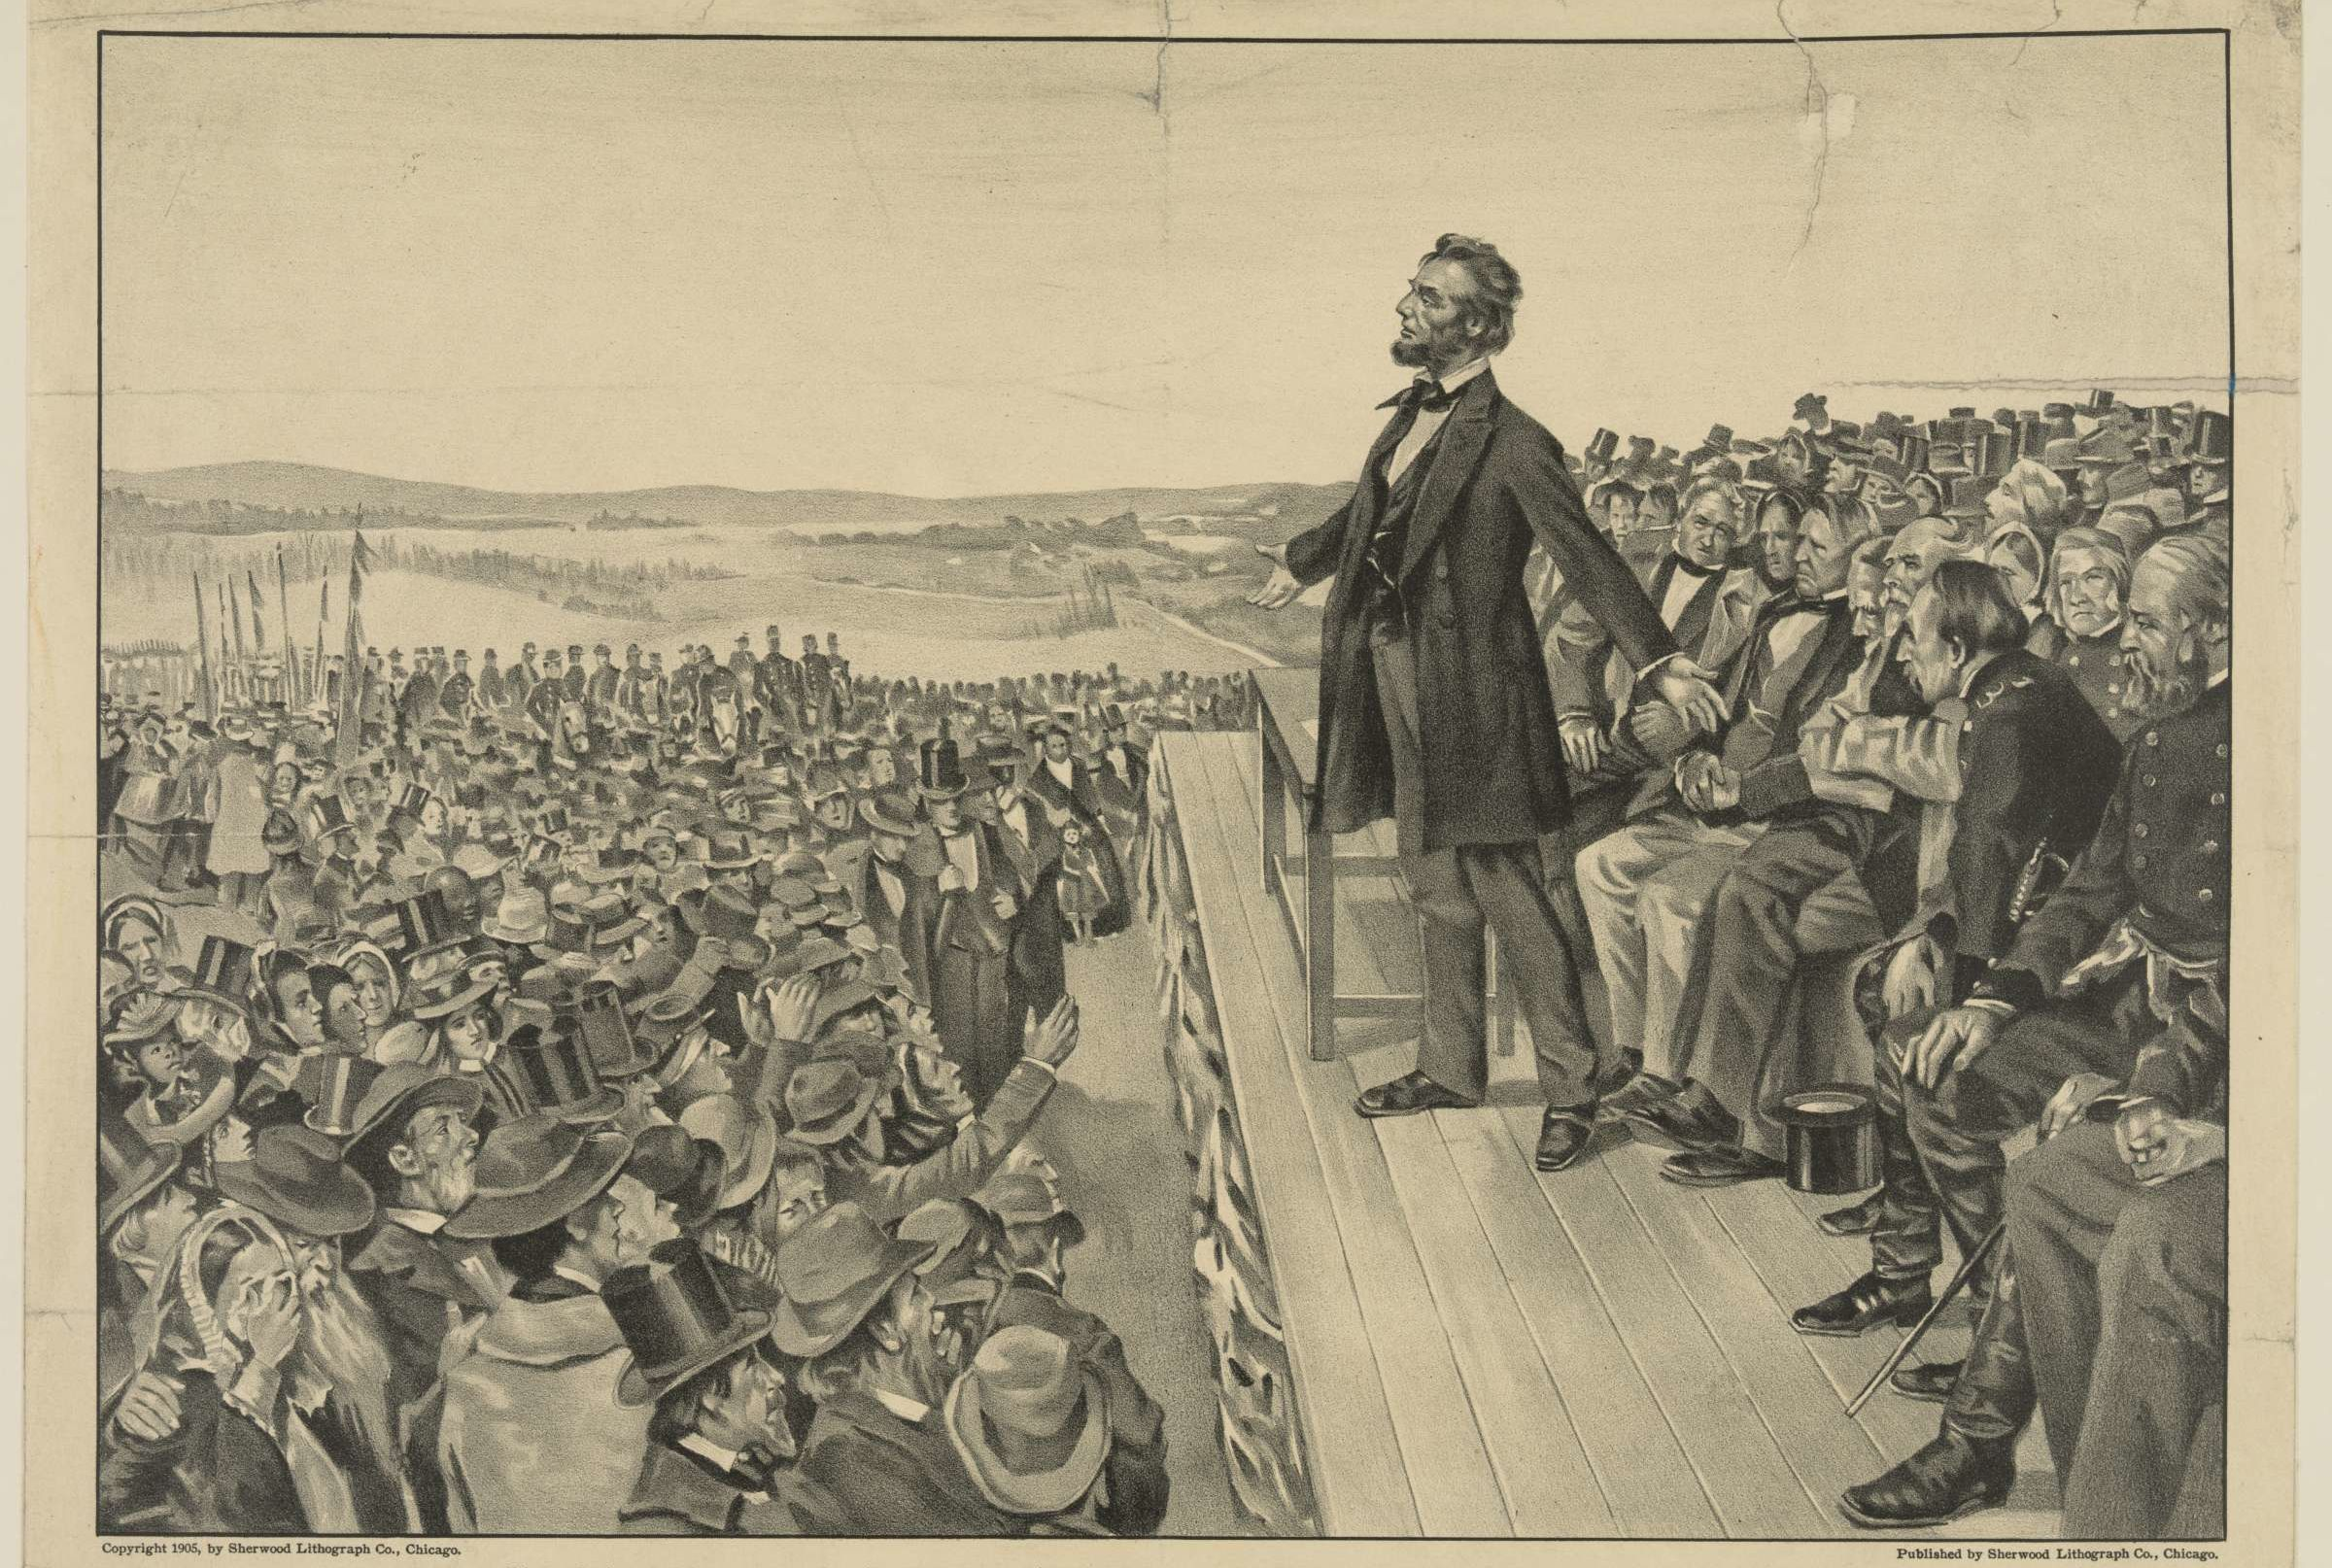 Image result for public domain images of abraham lincoln giving a speech